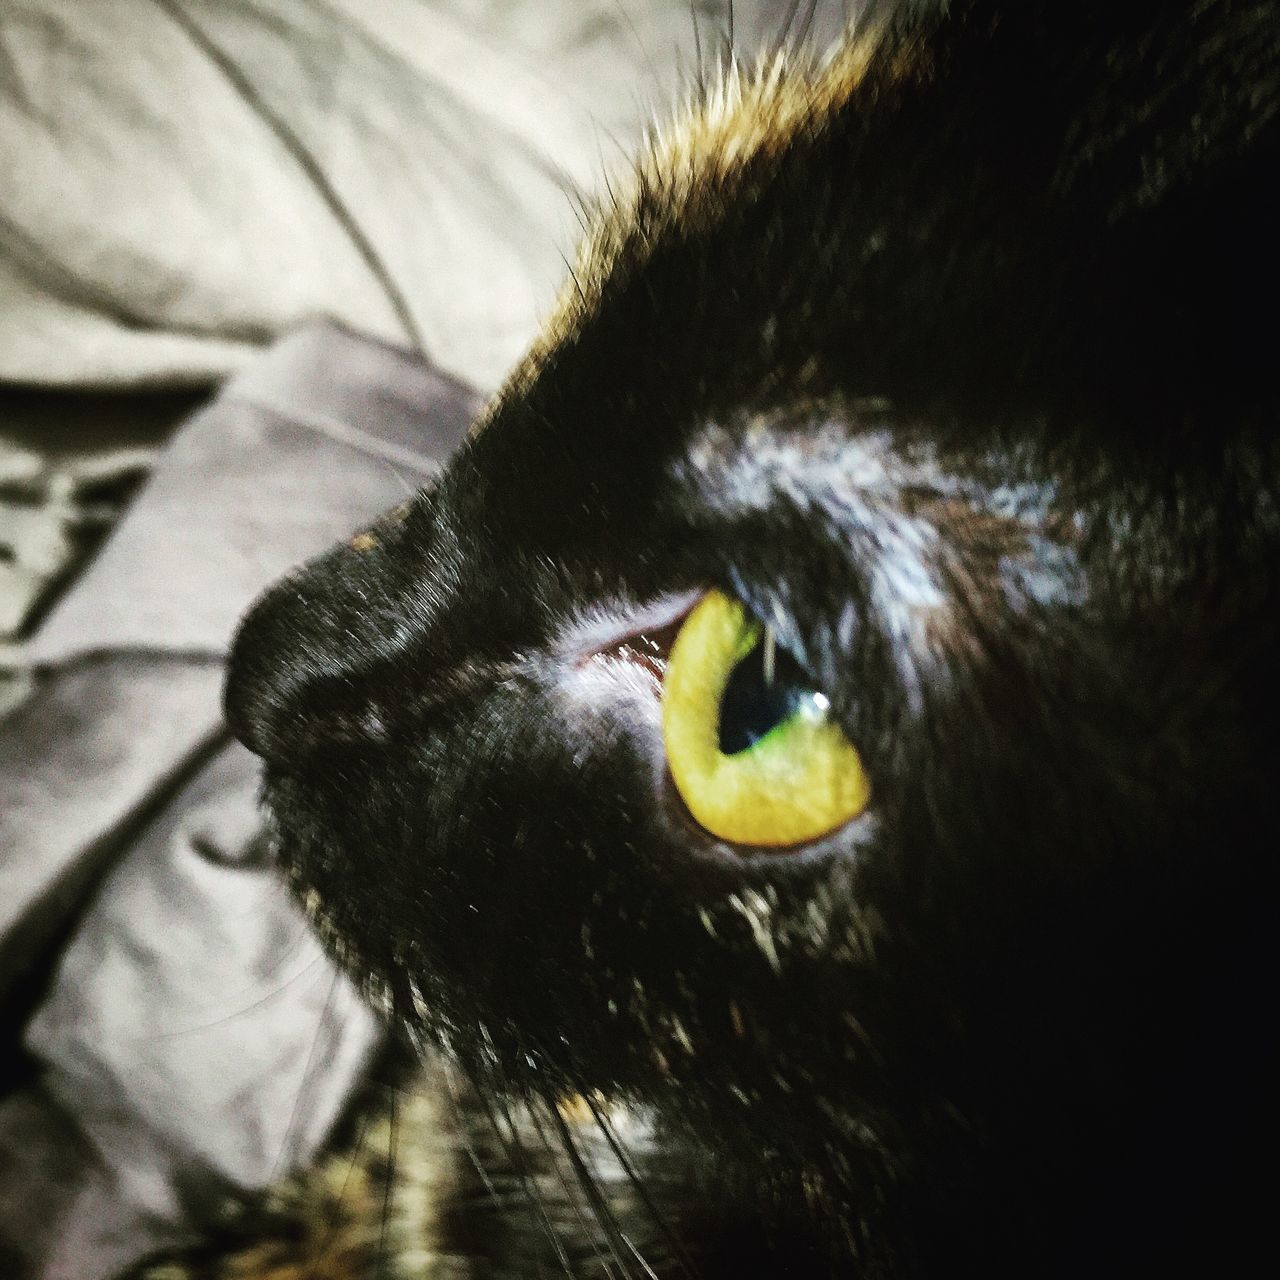 domestic cat, one animal, pets, domestic animals, animal themes, feline, cat, mammal, indoors, no people, close-up, portrait, nature, day